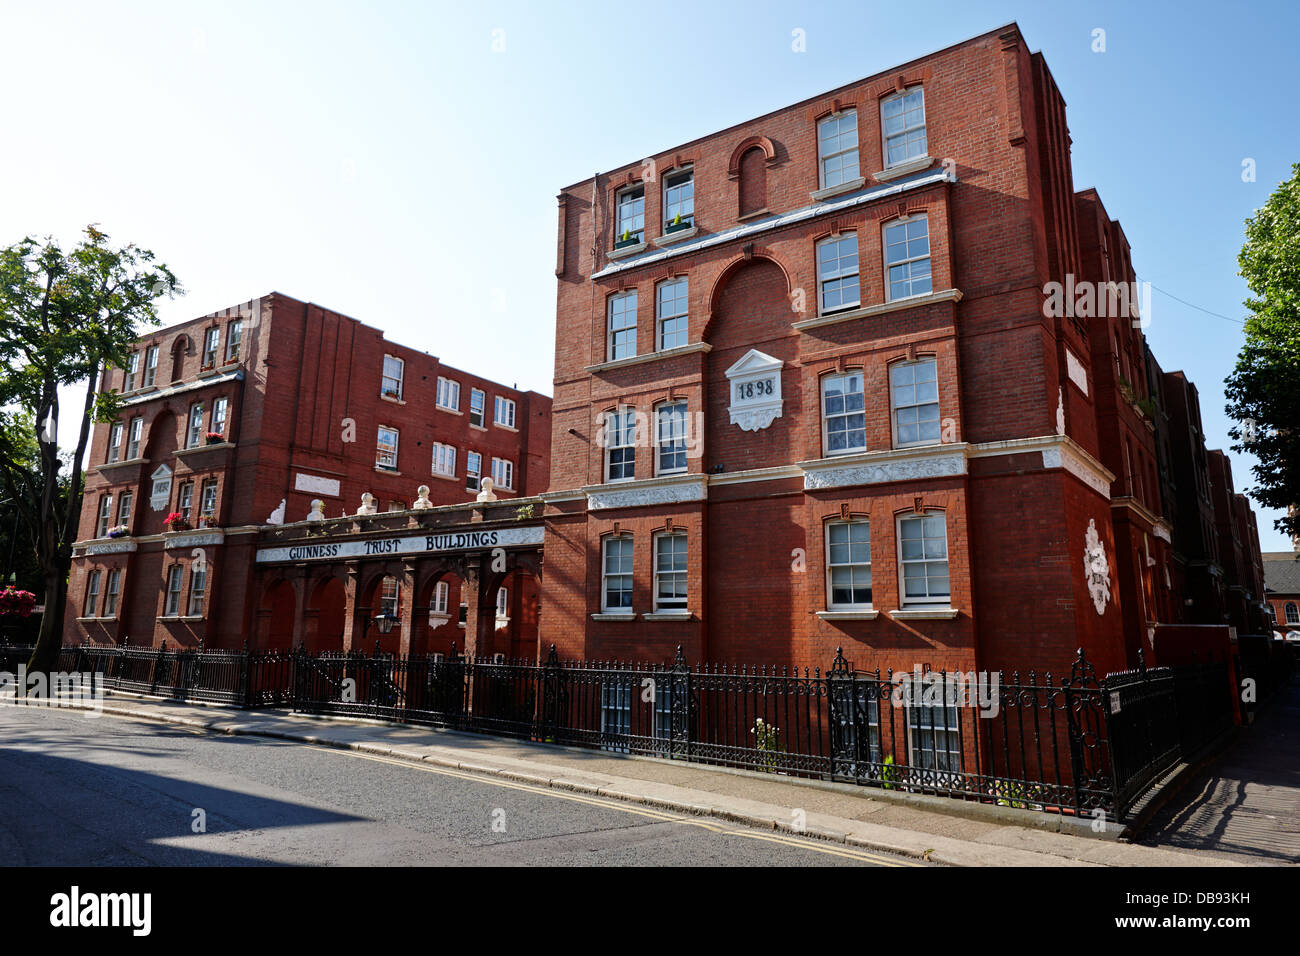 guinness trust buildings in snowsfields southwark London England UK - Stock Image